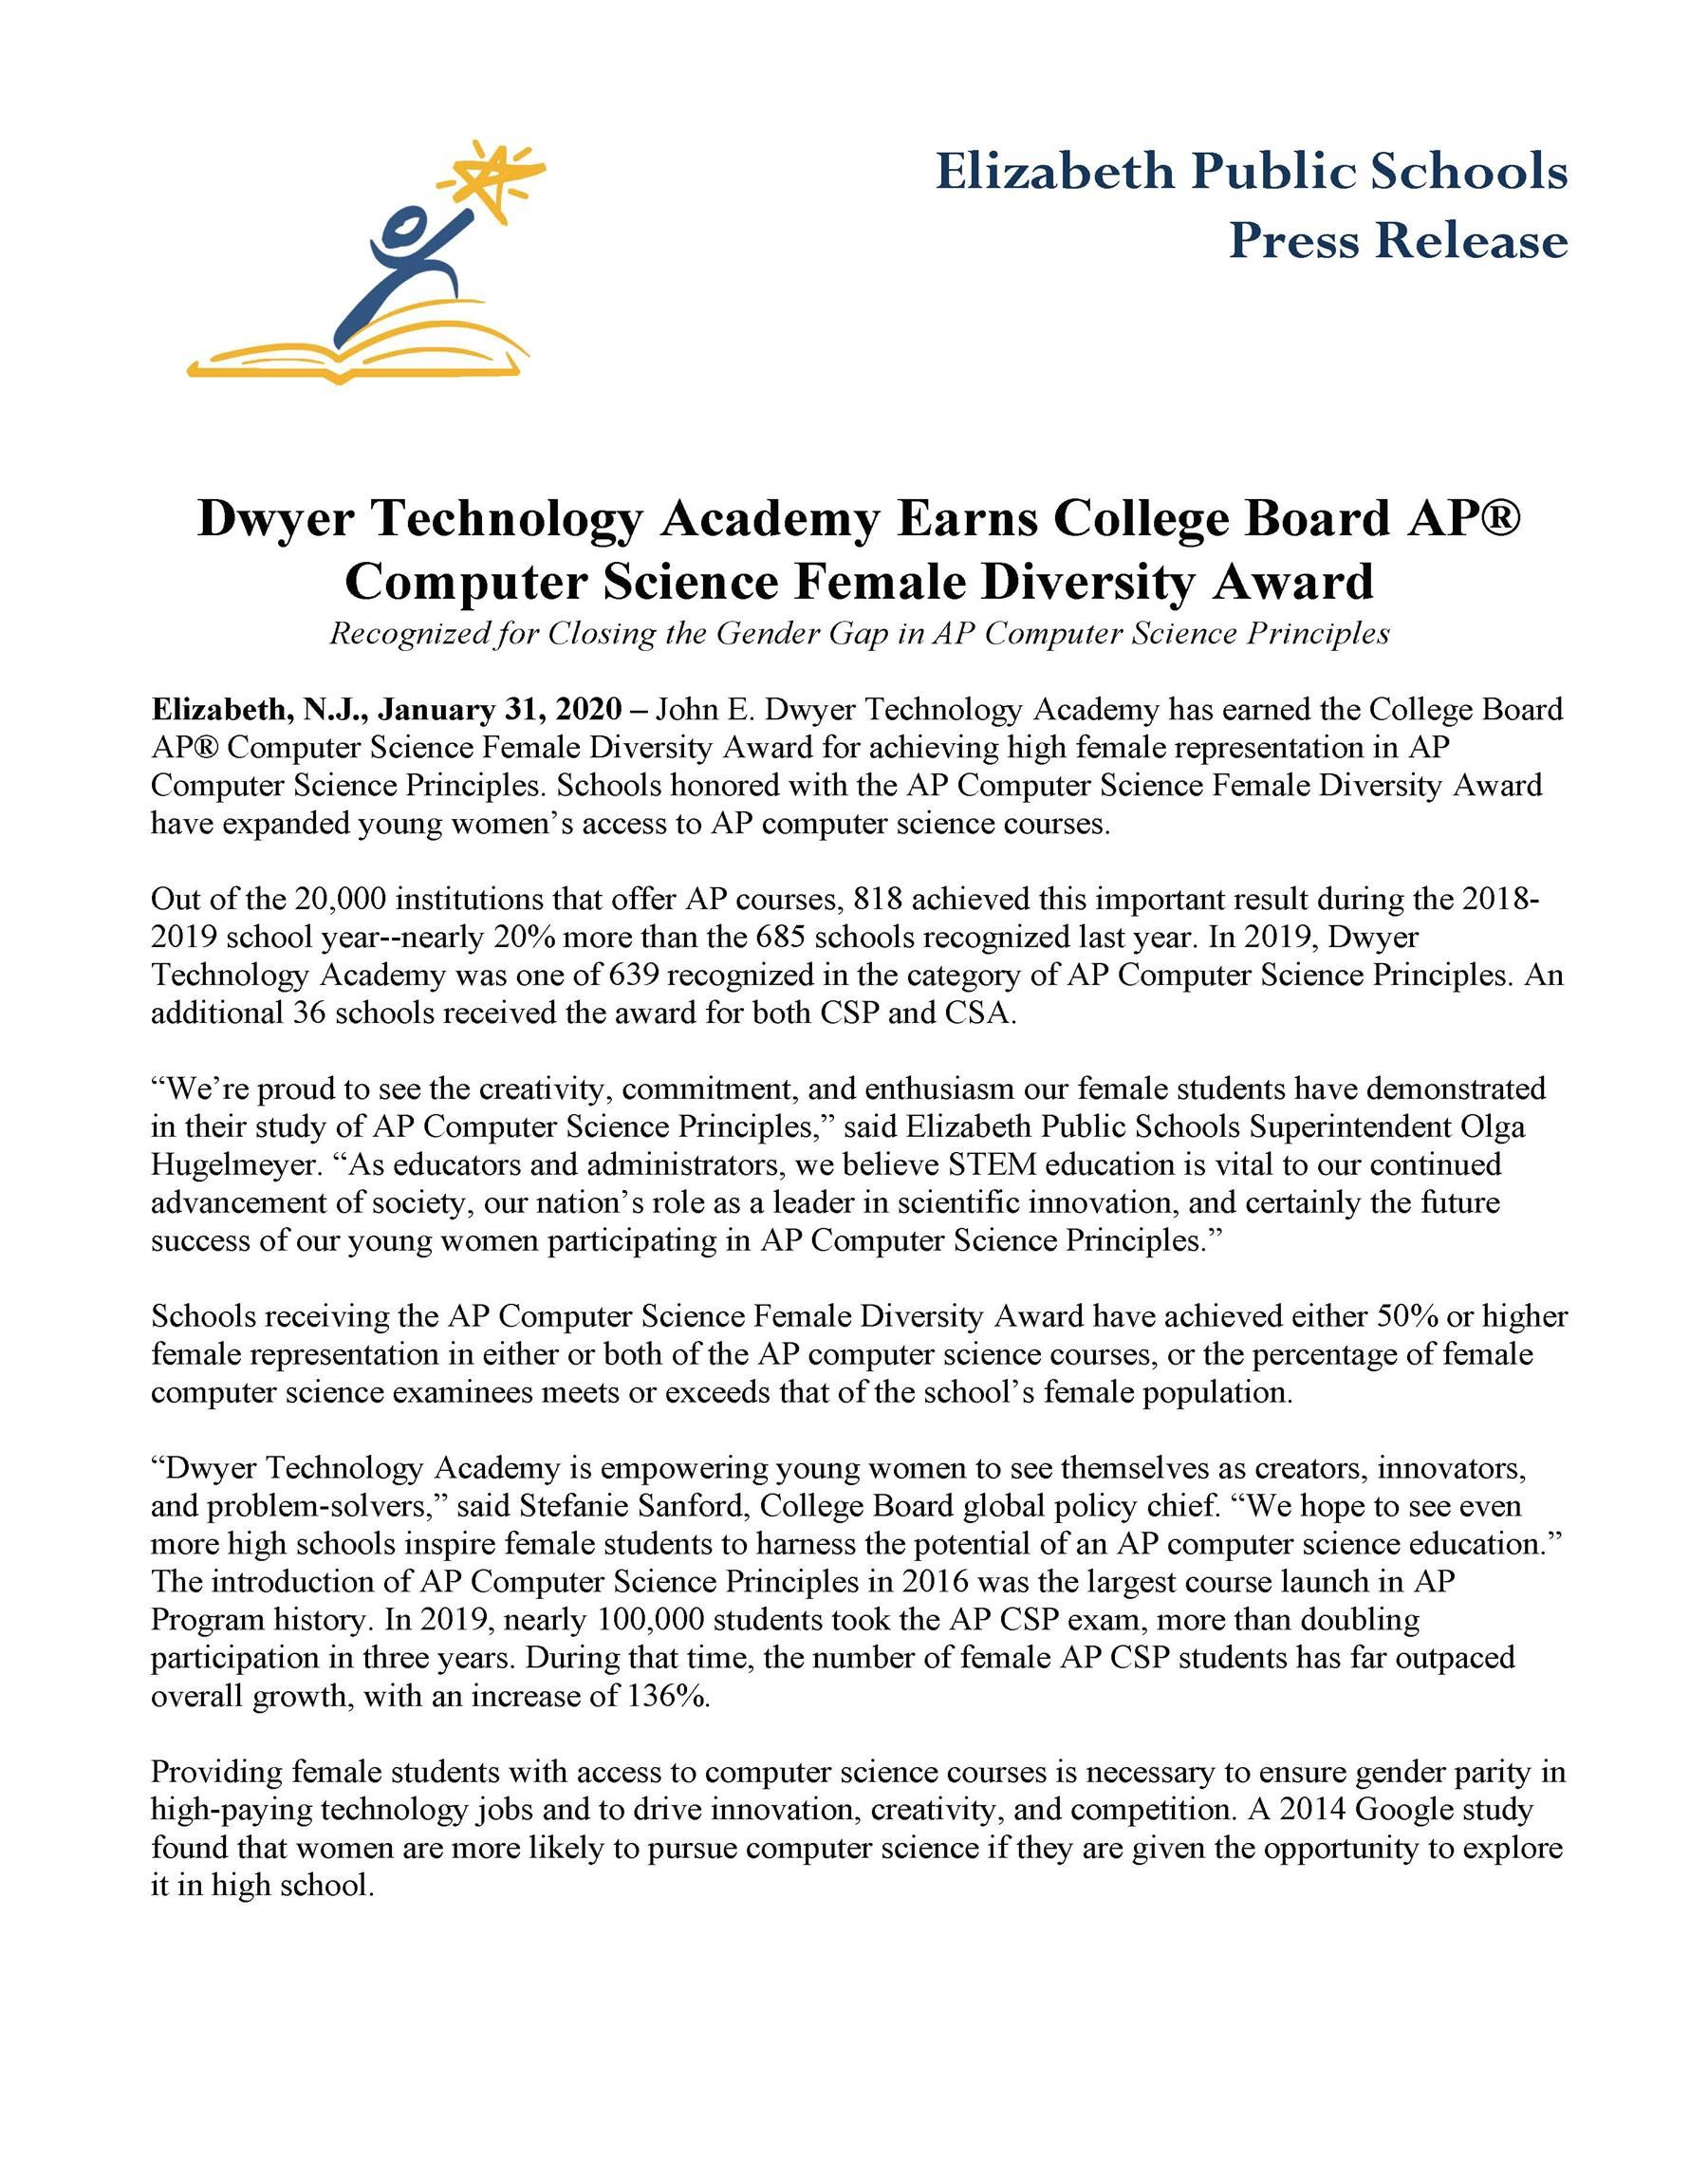 Dwyer Technology Academy Earns College Board AP®  Computer Science Female Diversity Award